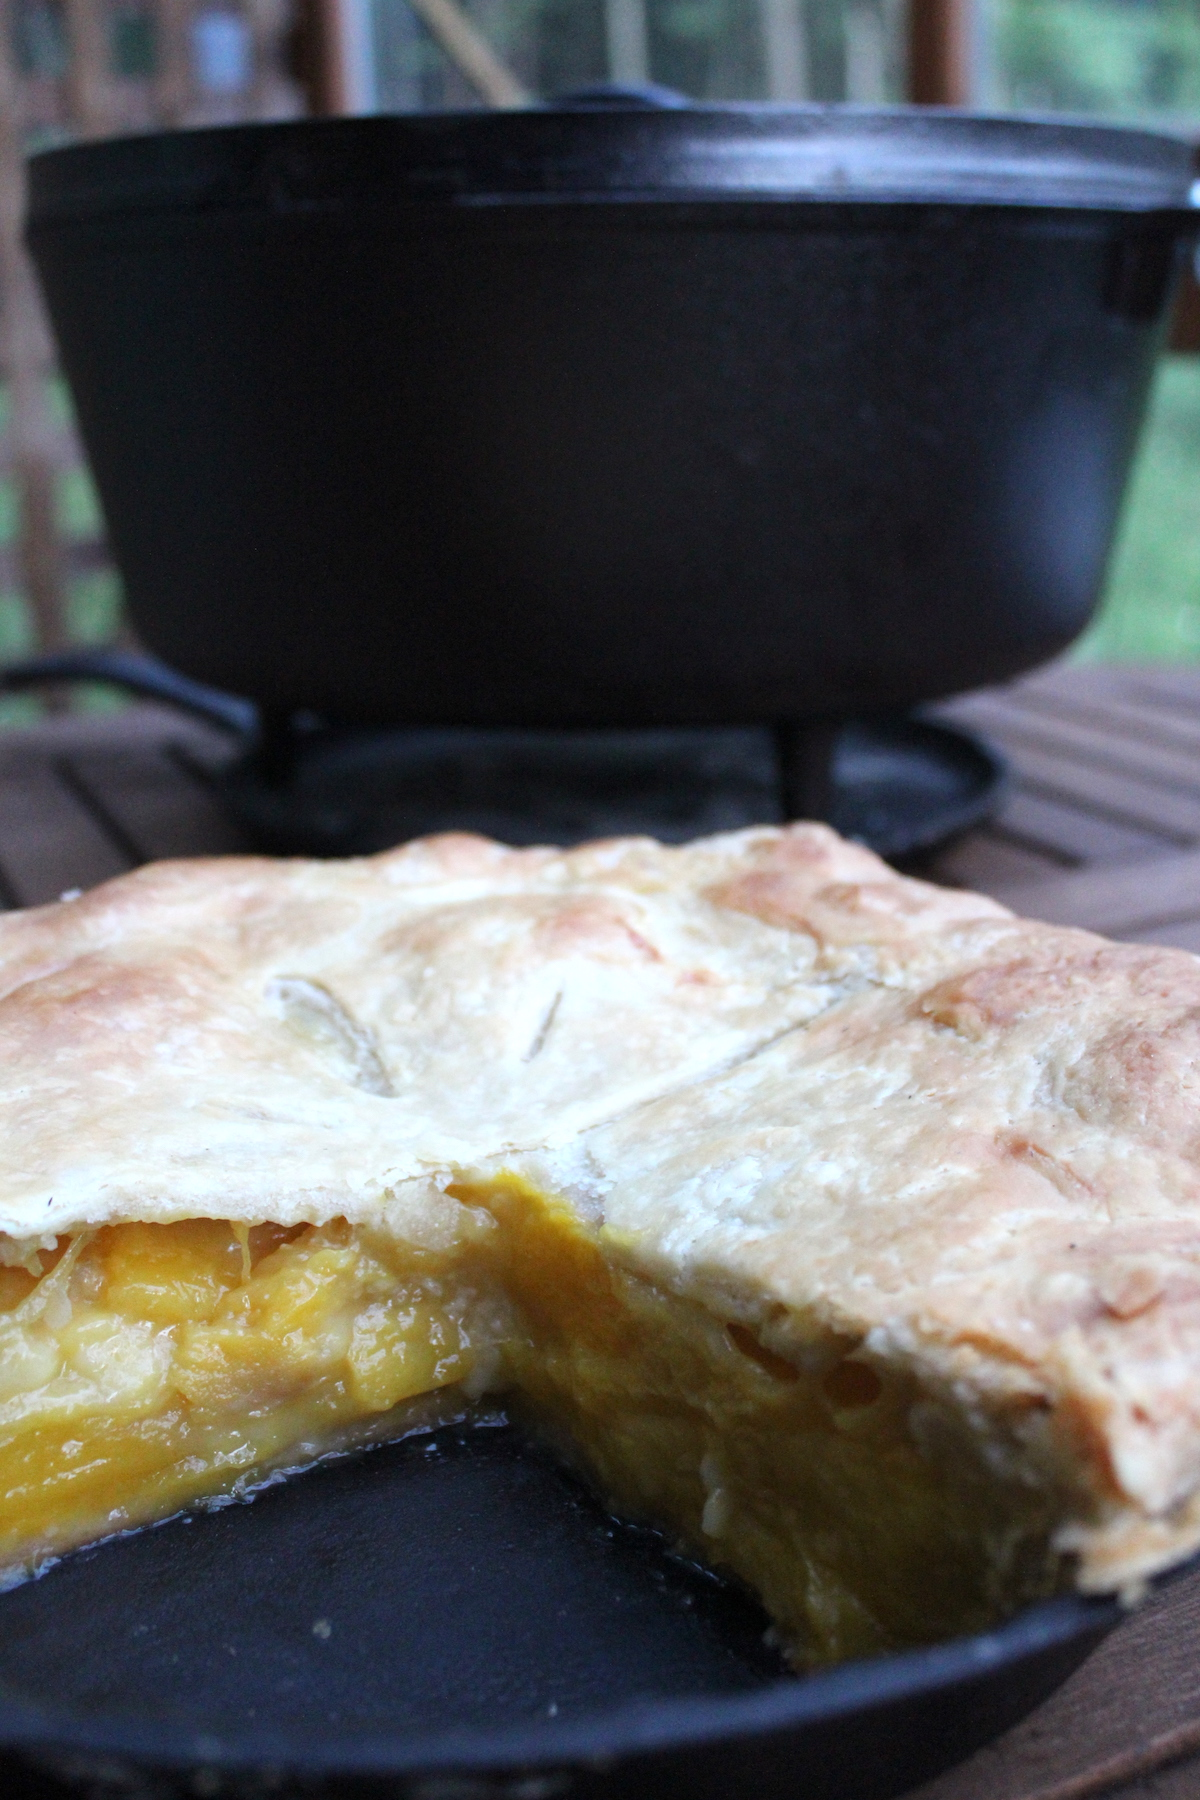 Baking a Pie in a Dutch Oven